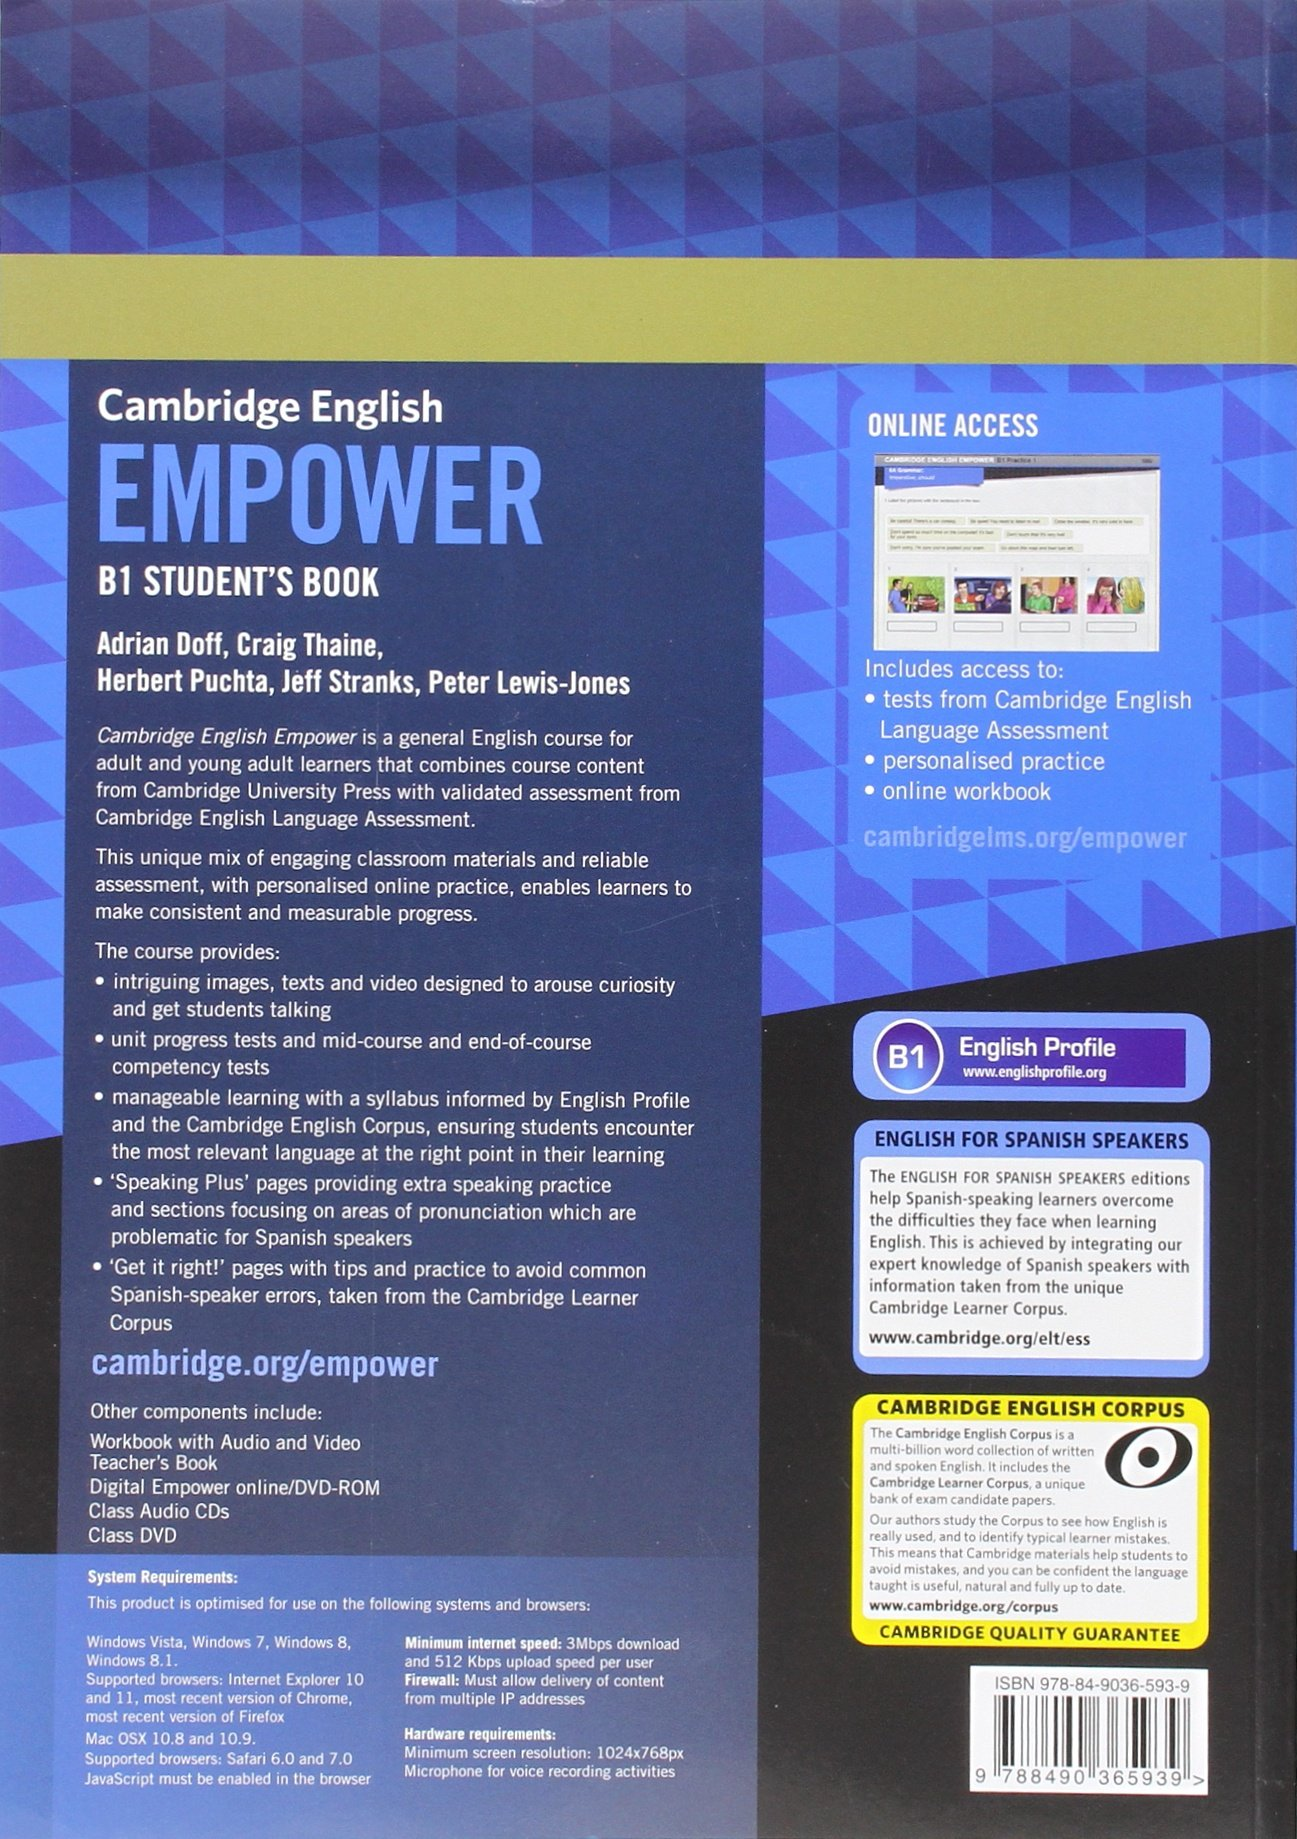 Cambridge English Empower for Spanish Speakers B1 Students Book with Online Assessment and Practice and Online Workbook: Amazon.es: Doff, Adrian, Thaine, Craig, Puchta, Herbert, Stranks, Jeff, Lewis-Jones, Peter: Libros en idiomas extranjeros